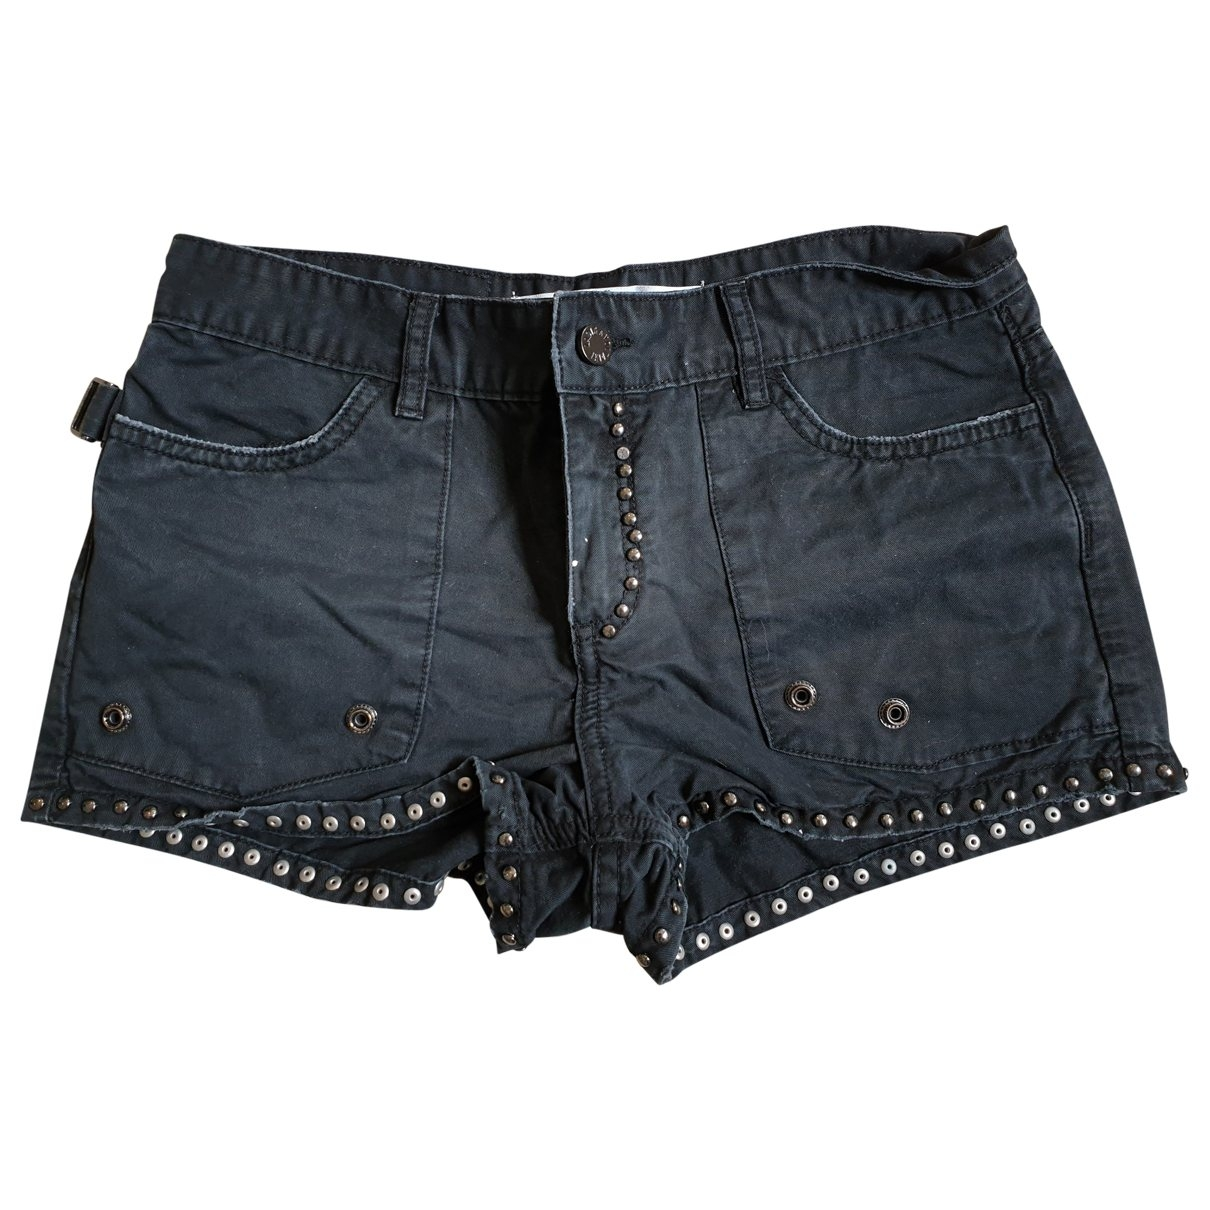 Zadig & Voltaire \N Shorts in  Anthrazit Baumwolle